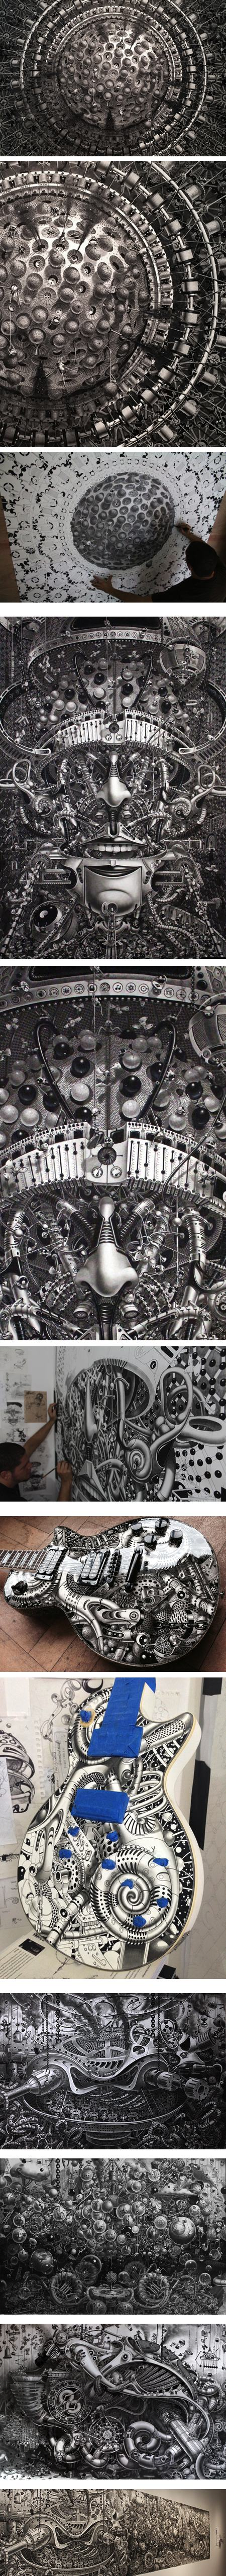 Samuel Gomez, large scale graphite and ink drawings